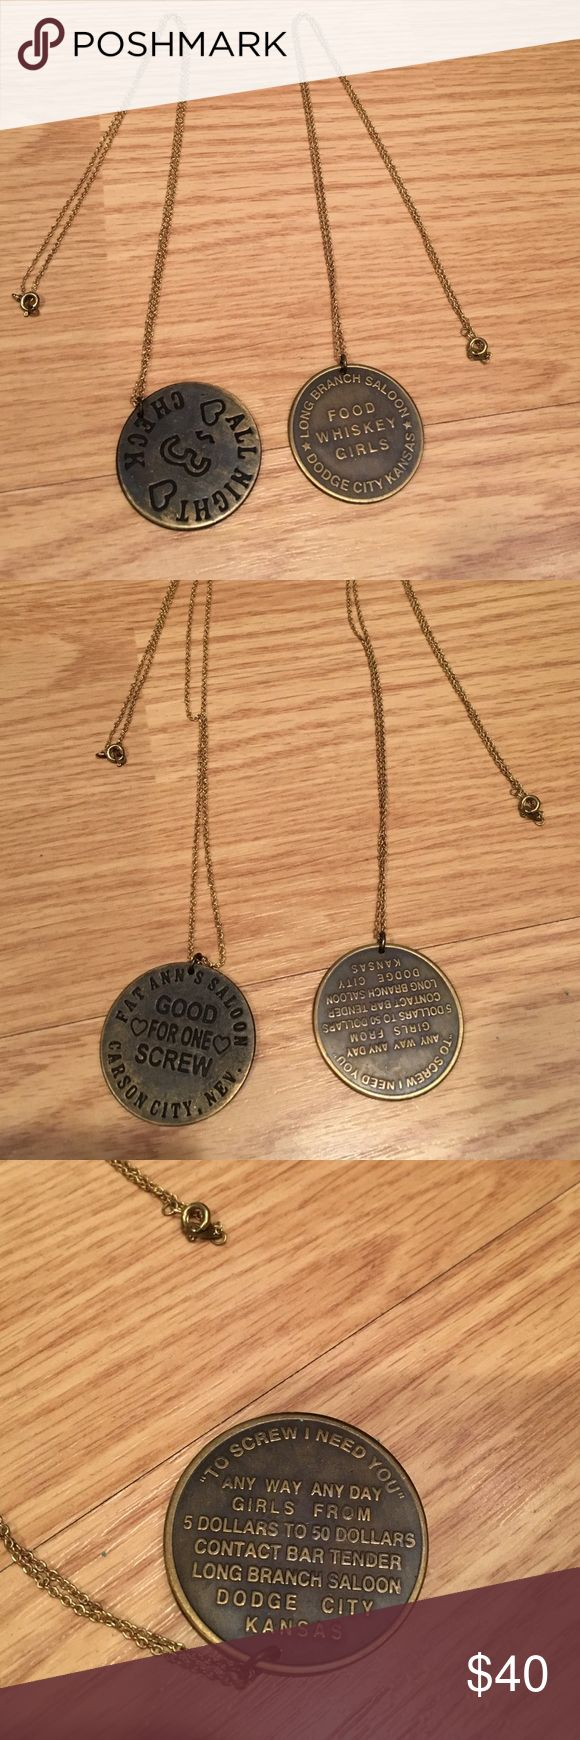 "Two Vintage brothel token necklaces These two necklaces have vintage traditional brothel tokens on them. One necklace says ""All night check $3"" on one side and the other says ""Good for one screw, Fat Anna Salon, Carson City Nevada. The second necklace says ""Food Whiskey Girls, Long Branch Saloon Dodge City Kansas"" and the other side says ""To screw I need you, any way any day girls from 5 dollars to 50 dollars, contact bar tender"". 12in chains. Jewelry Necklaces"